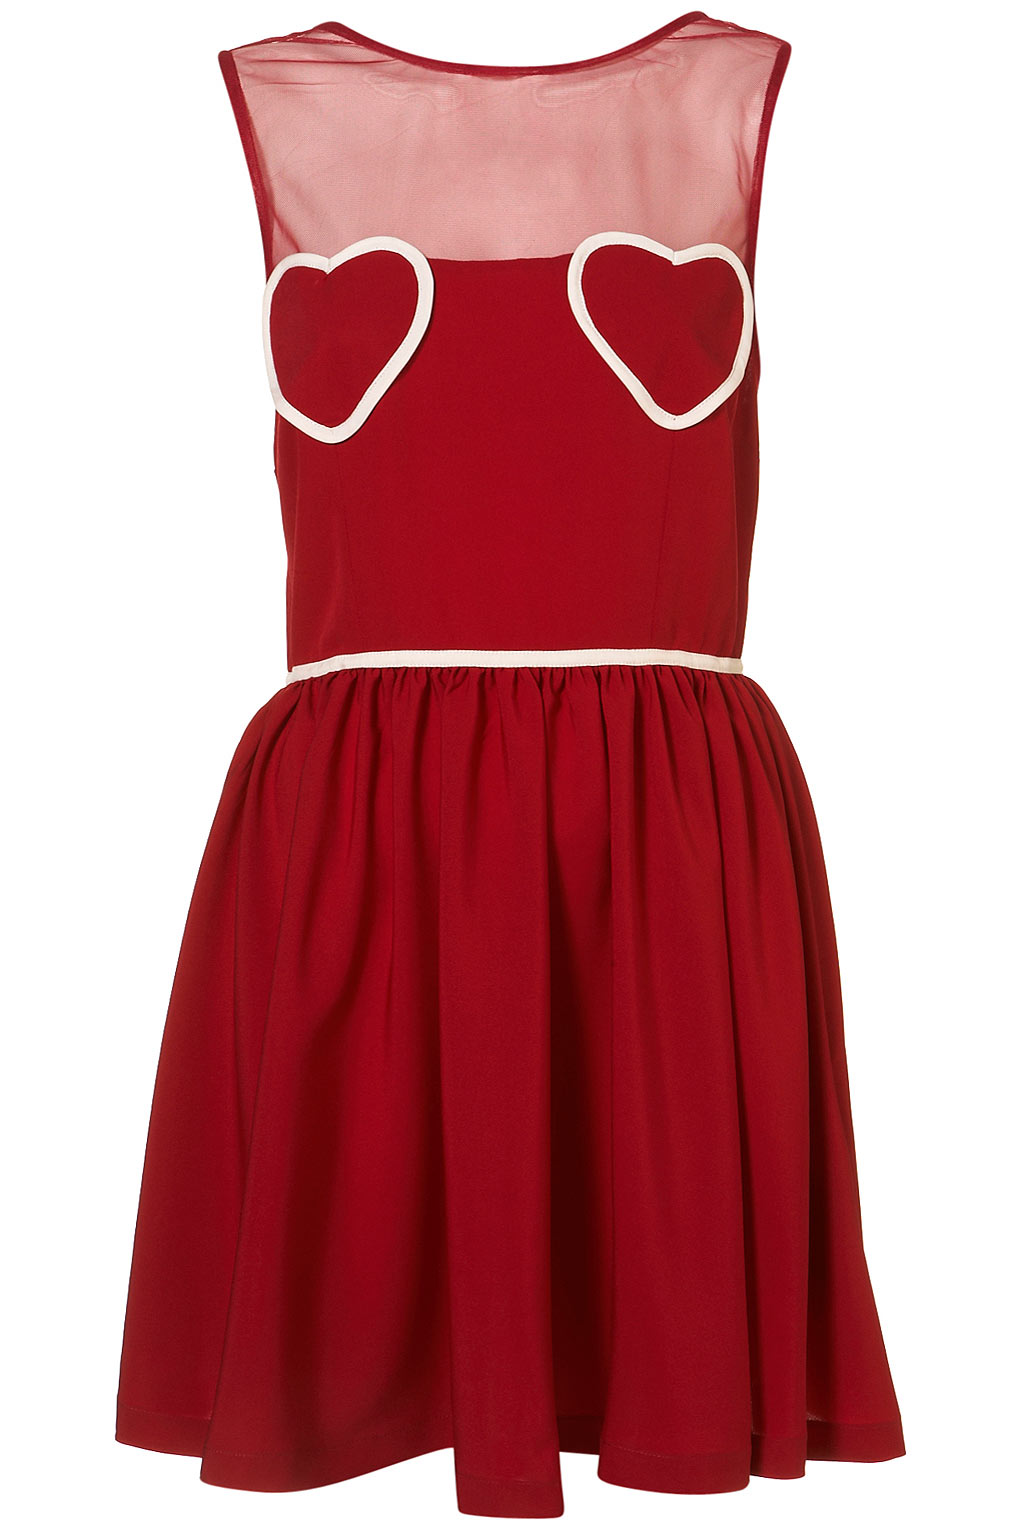 Topshop Heart Mesh Flippy Dress in Red | Lyst